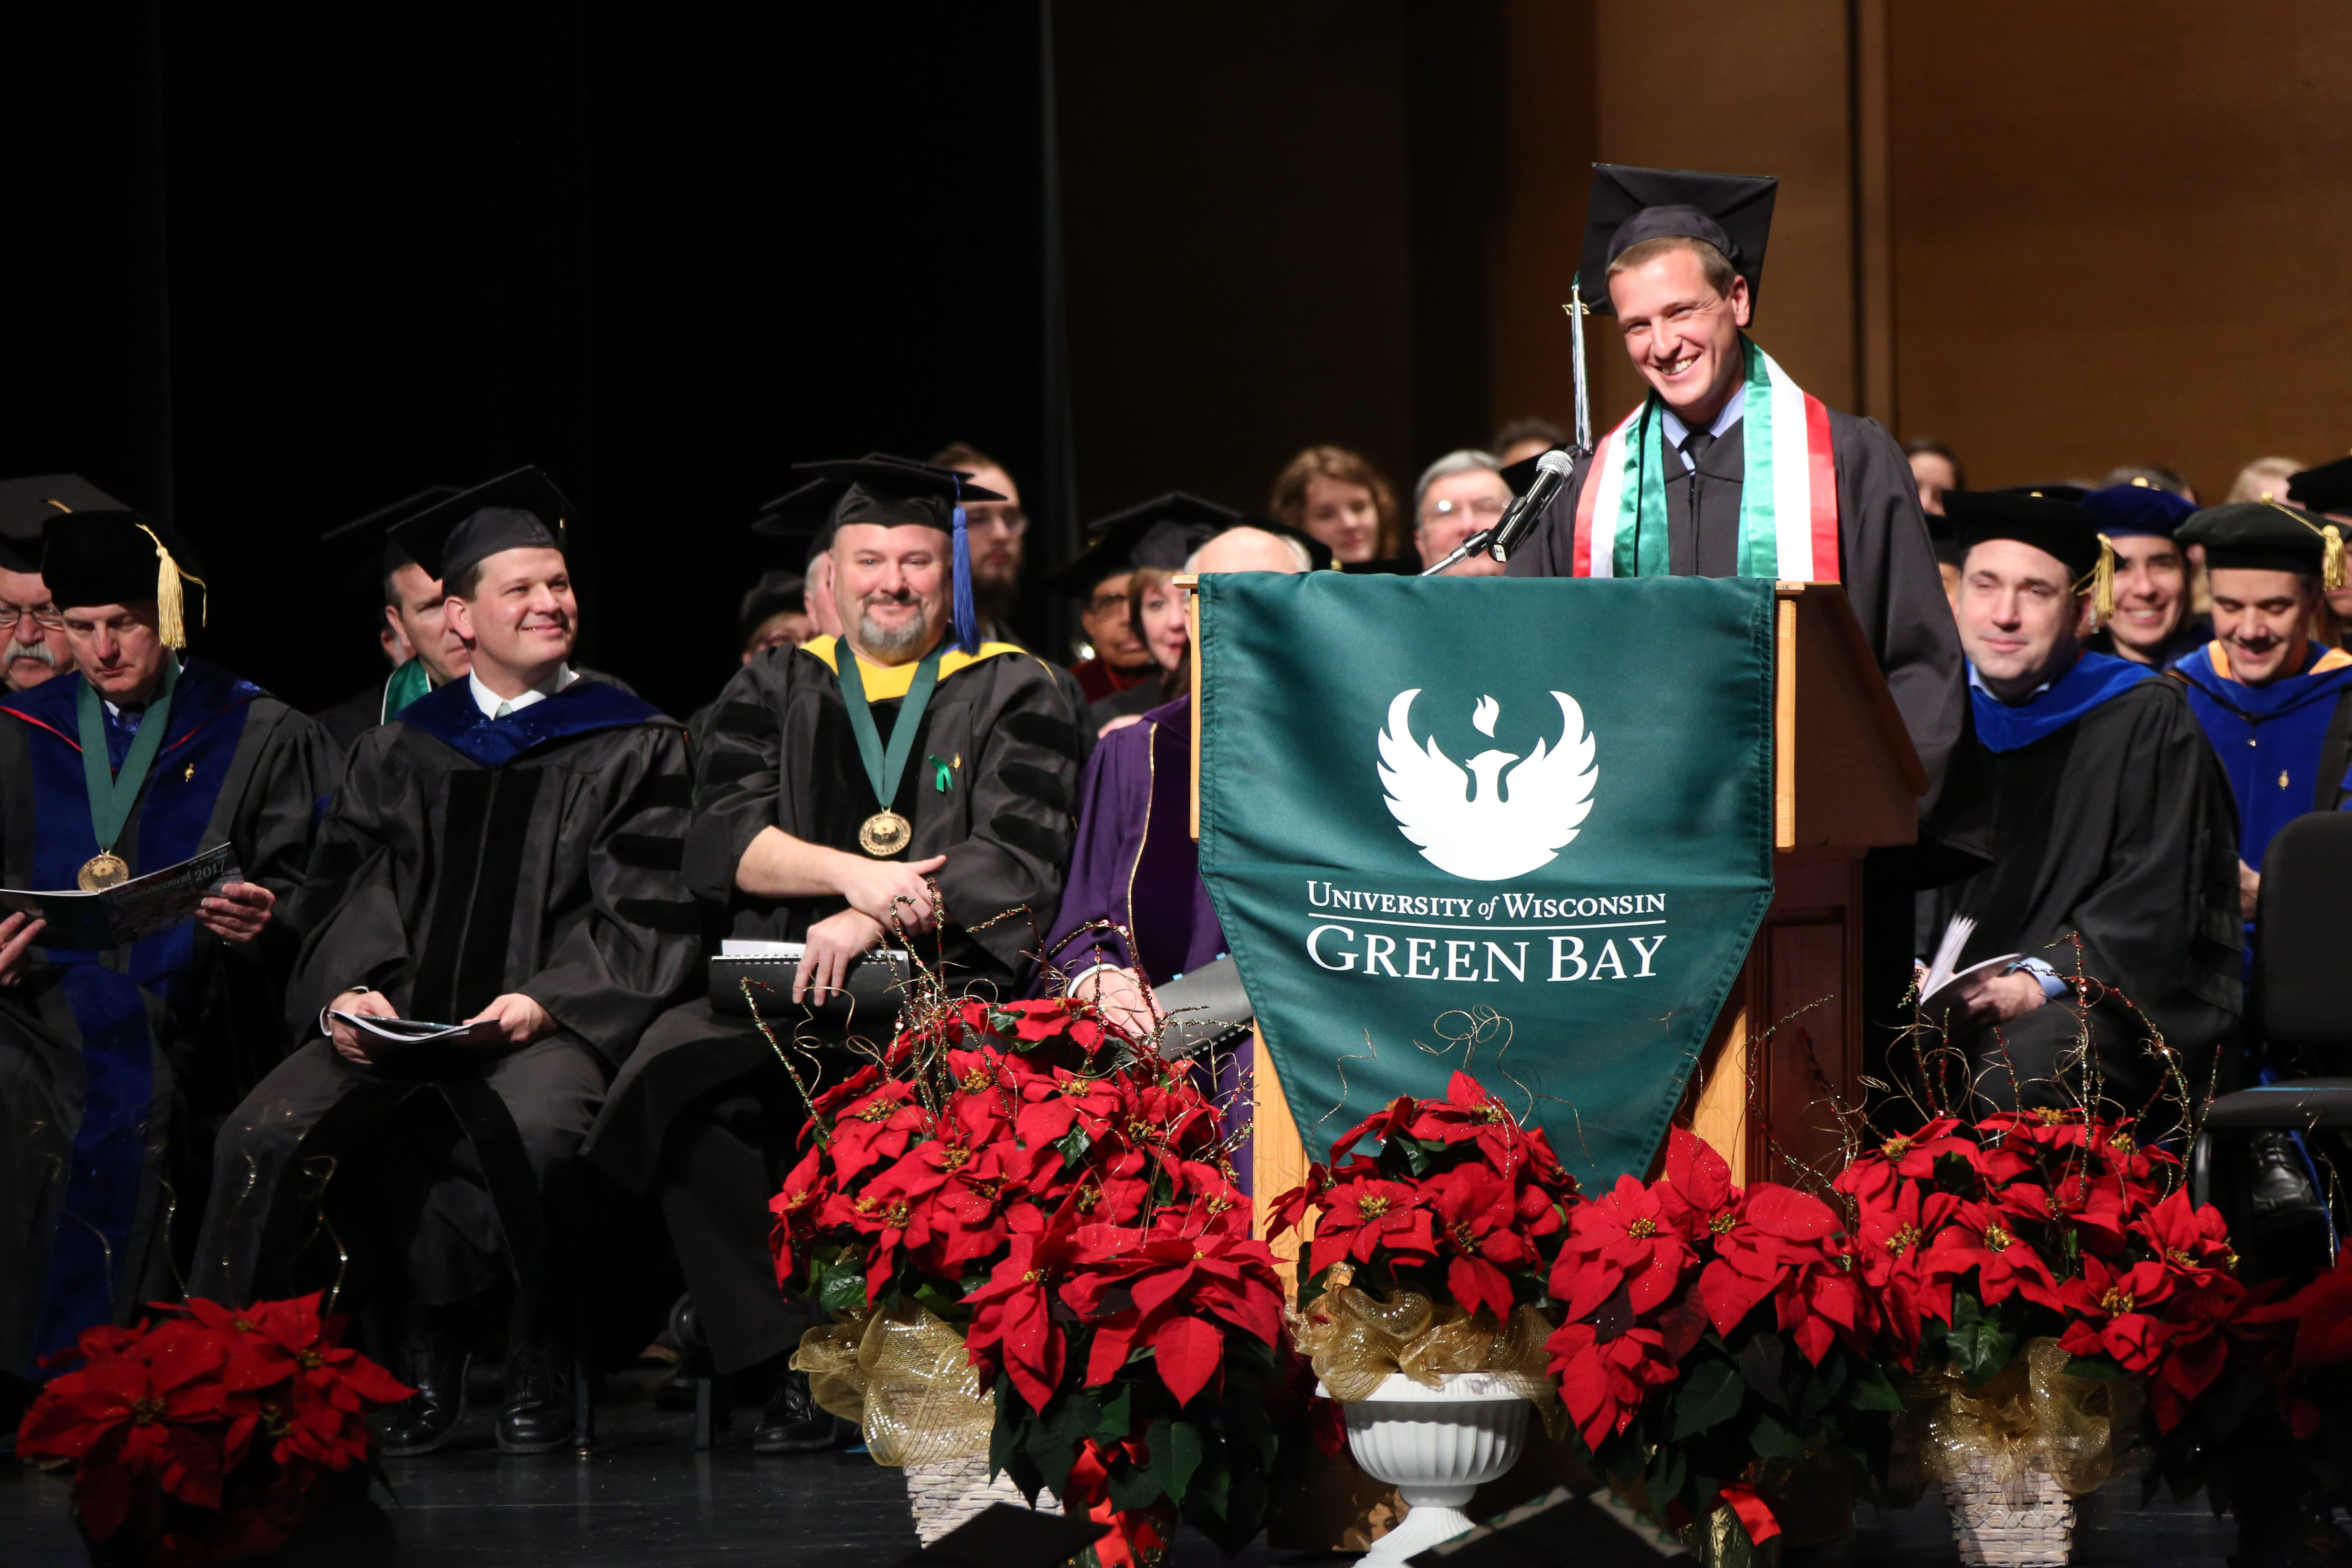 Riley Garbe's commencement address